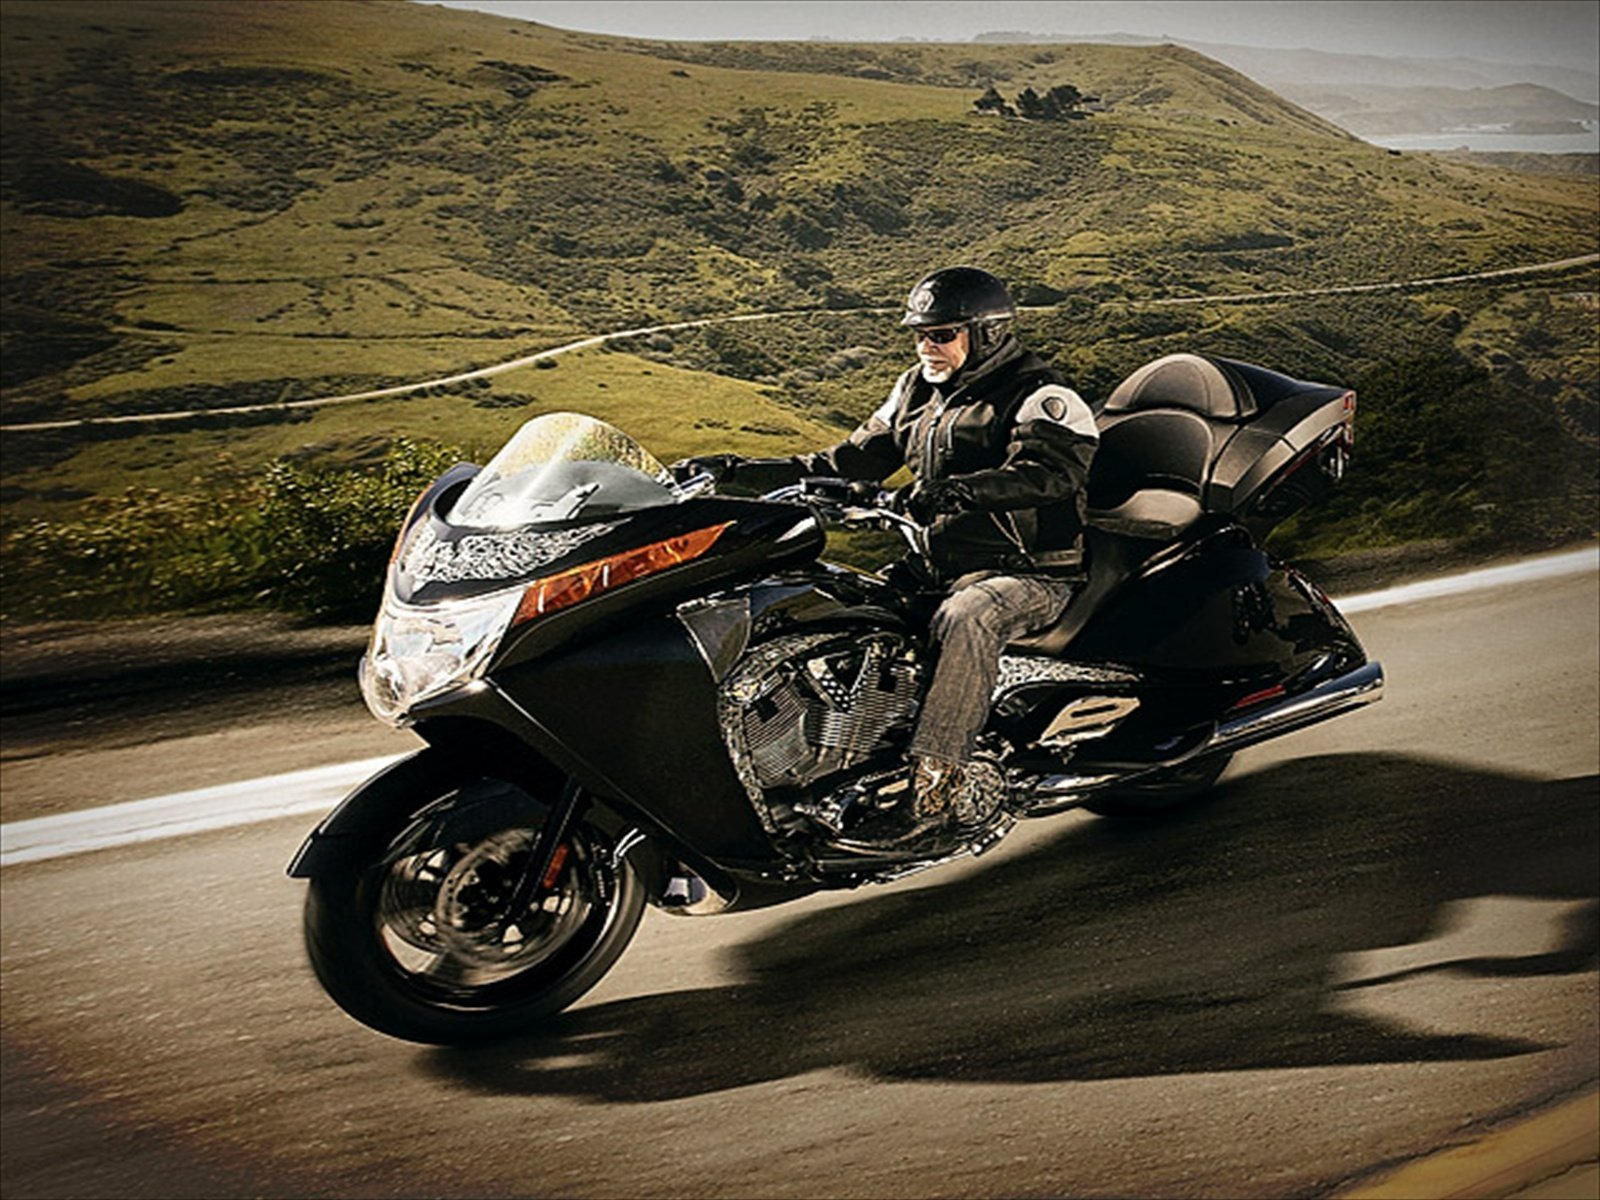 2012 Victory Arlen Ness Vision  Top Speed